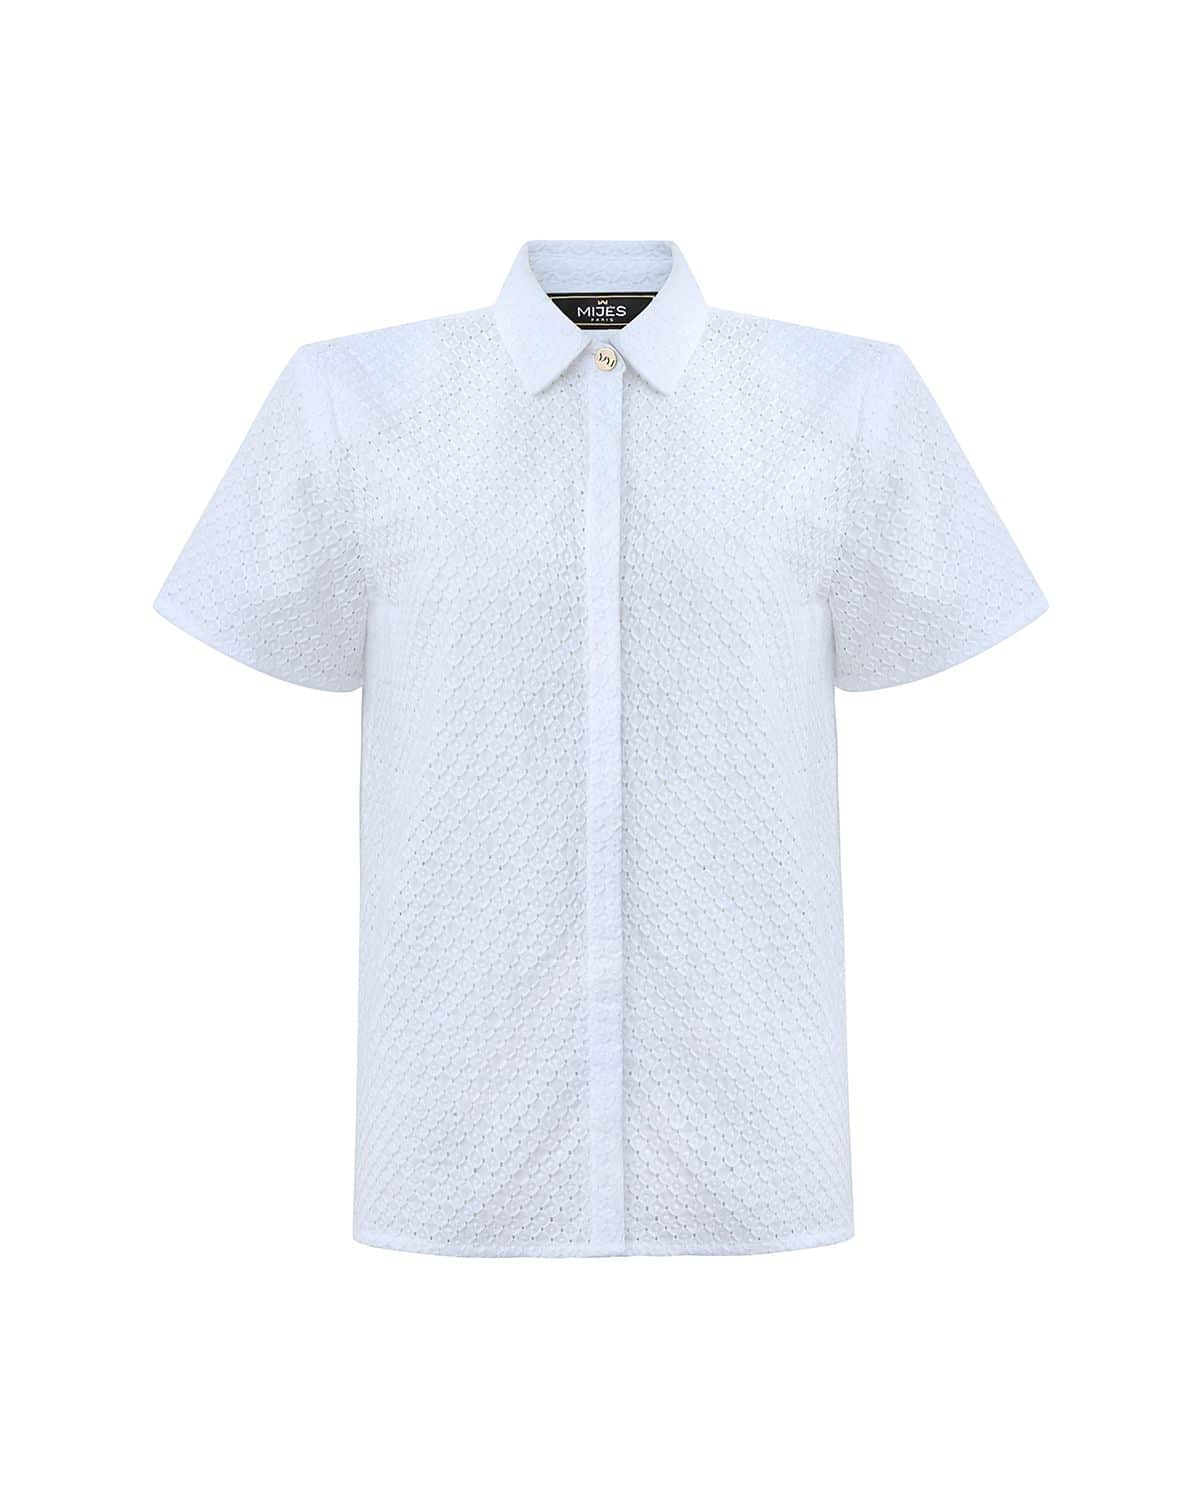 Chemise Manches Courtes en Broderies Anglaises